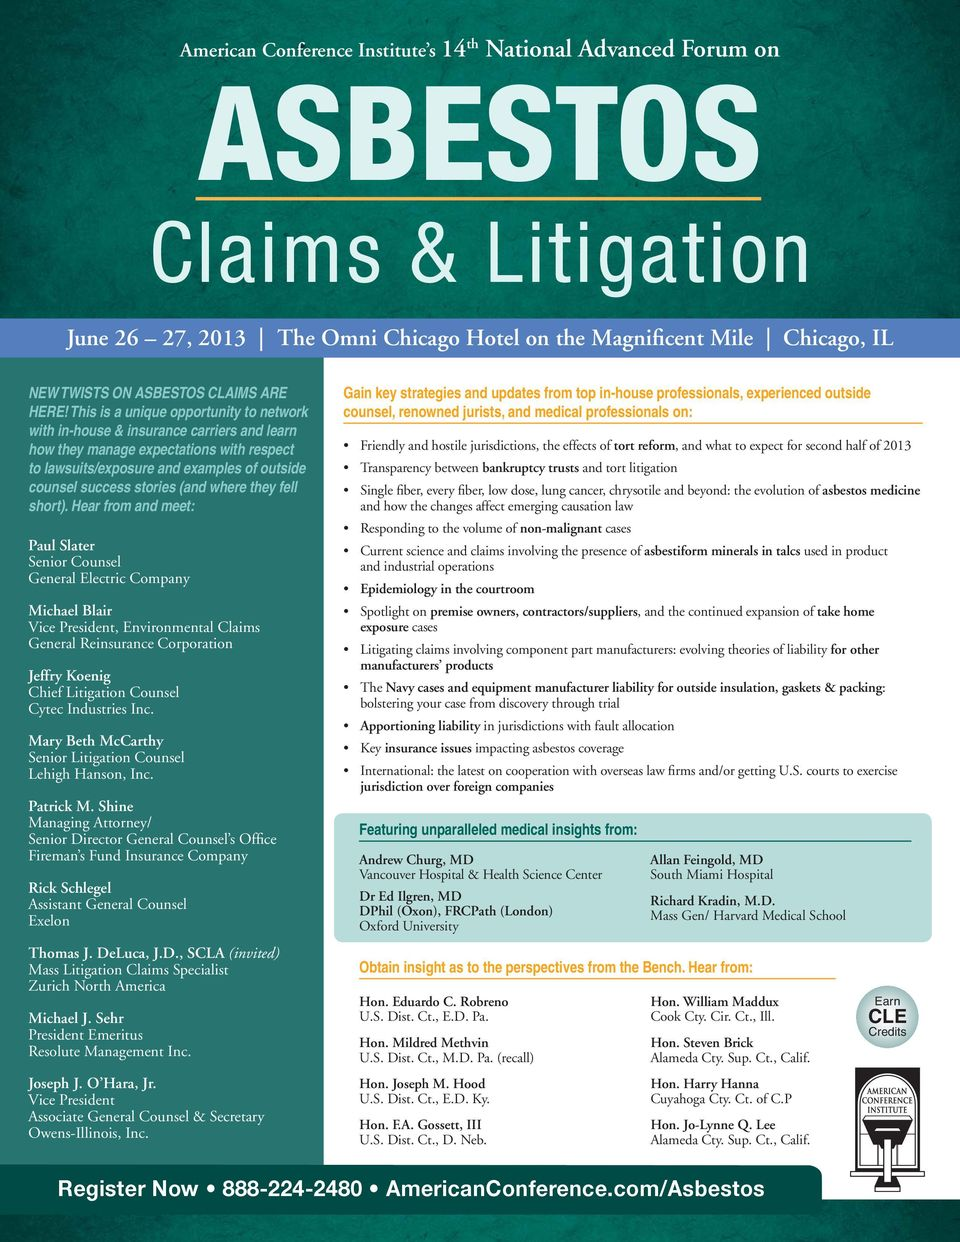 This is a unique opportunity to network with in-house & insurance carriers and learn how they manage expectations with respect to lawsuits/exposure and examples of outside counsel success stories